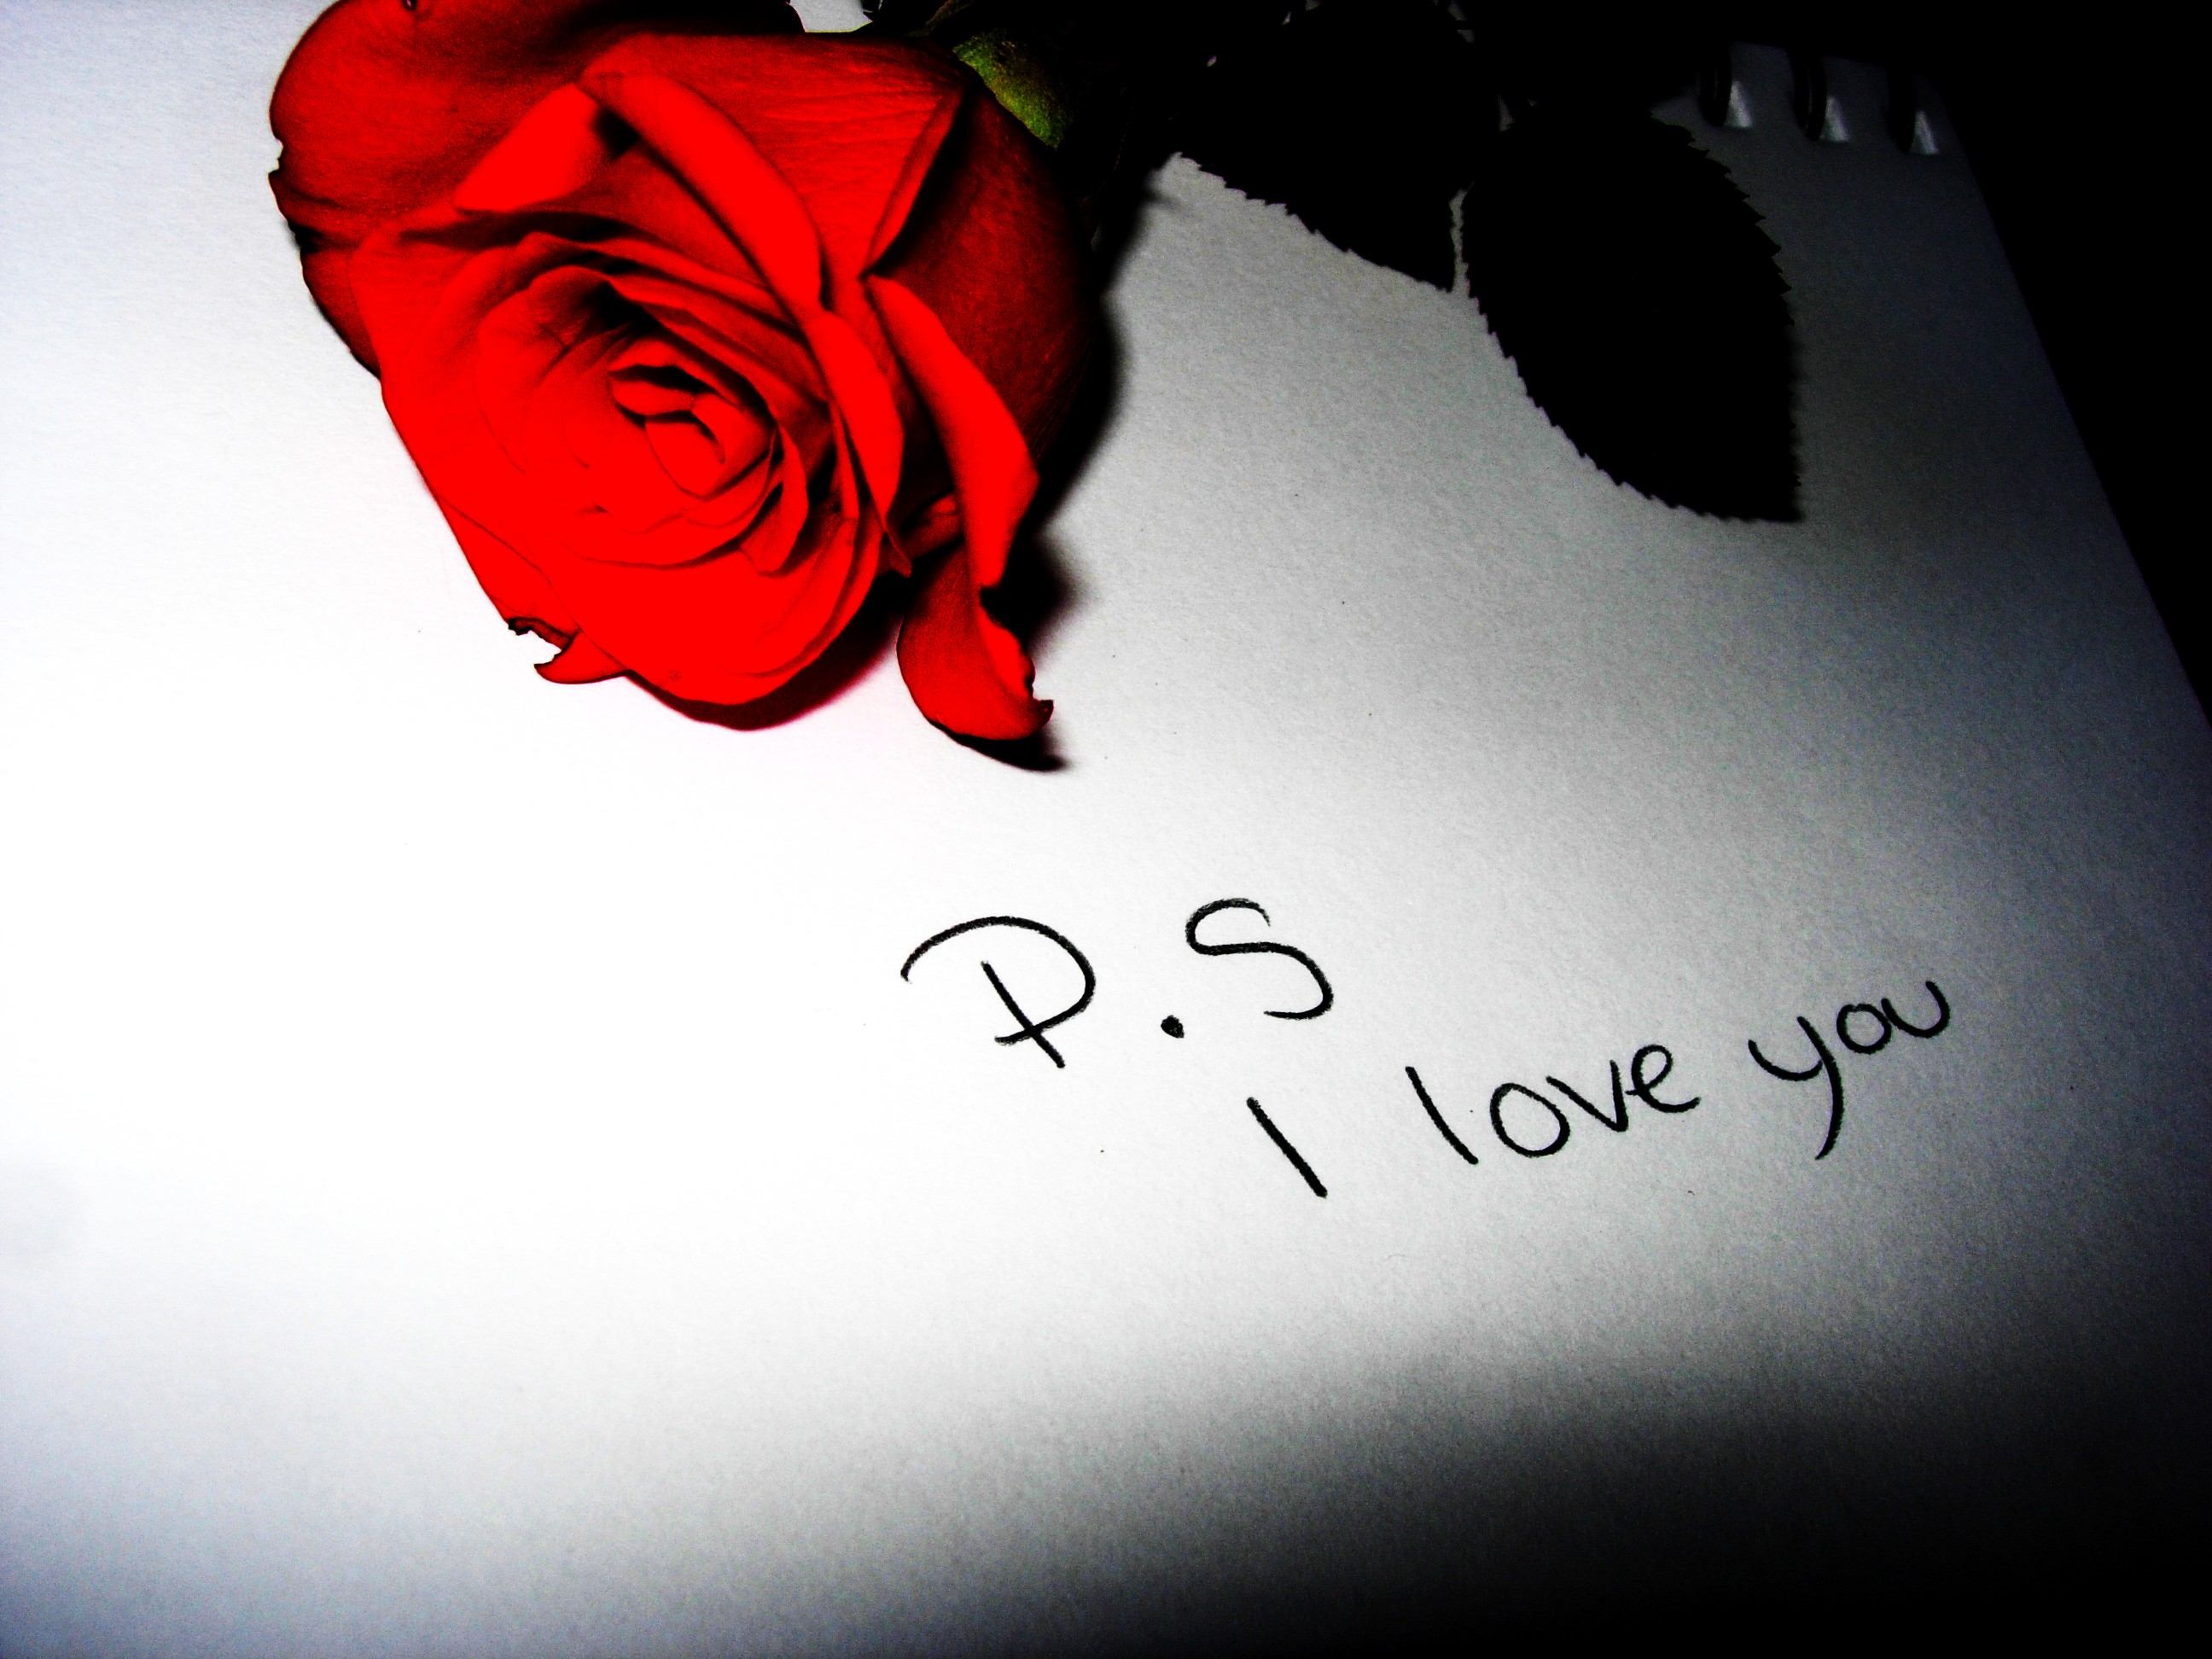 Love You HD Wallpapers 2592x1944